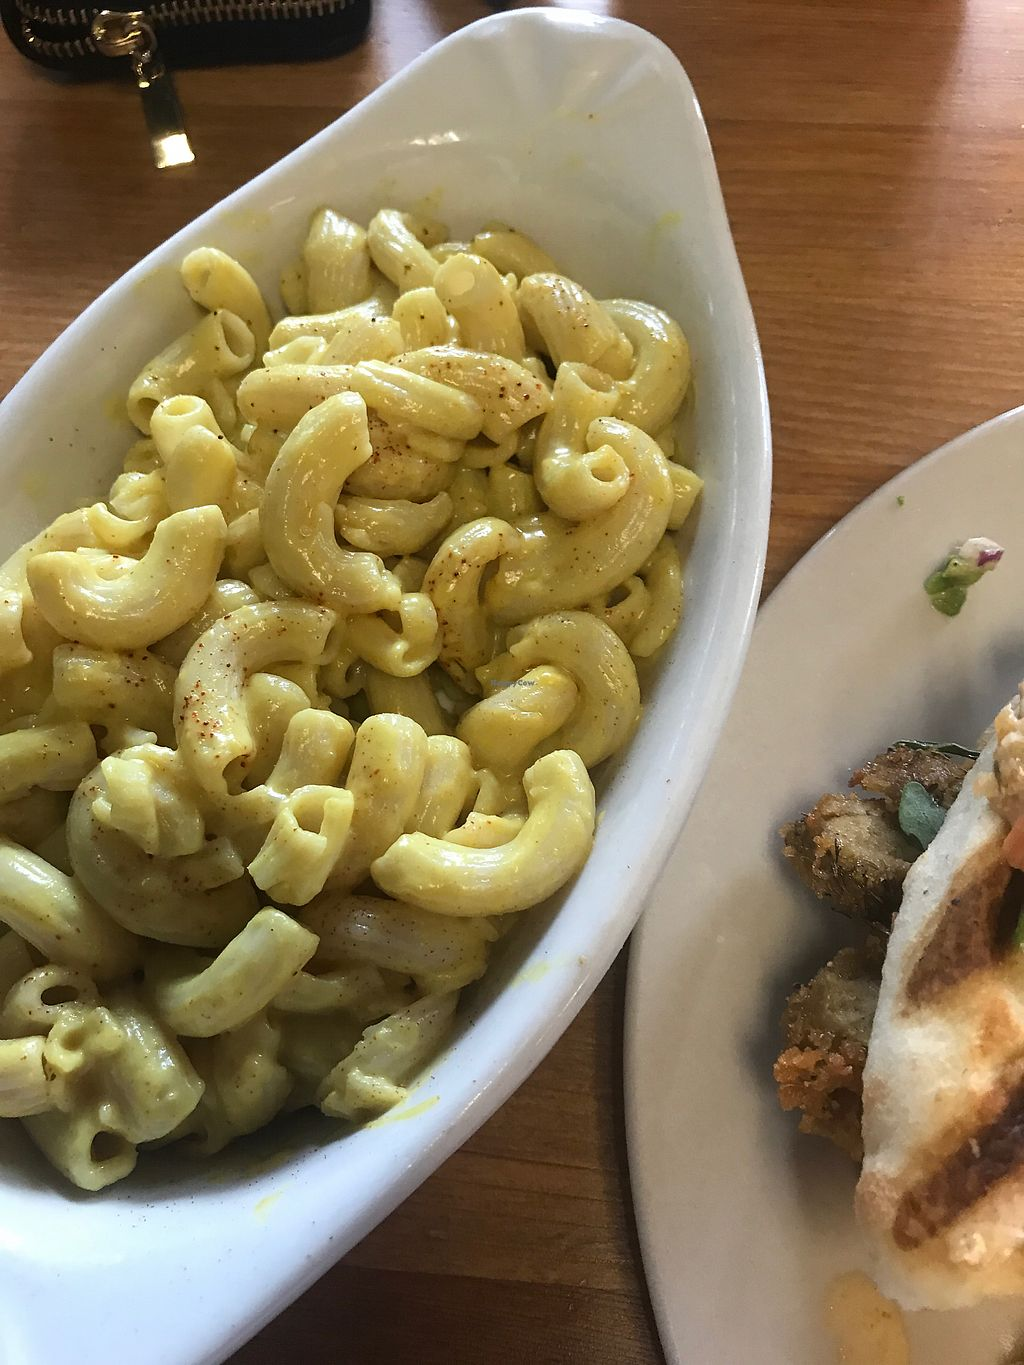 """Photo of Killer Vegan  by <a href=""""/members/profile/Pure"""">Pure</a> <br/>Mac n cheese <br/> September 15, 2017  - <a href='/contact/abuse/image/52819/304556'>Report</a>"""